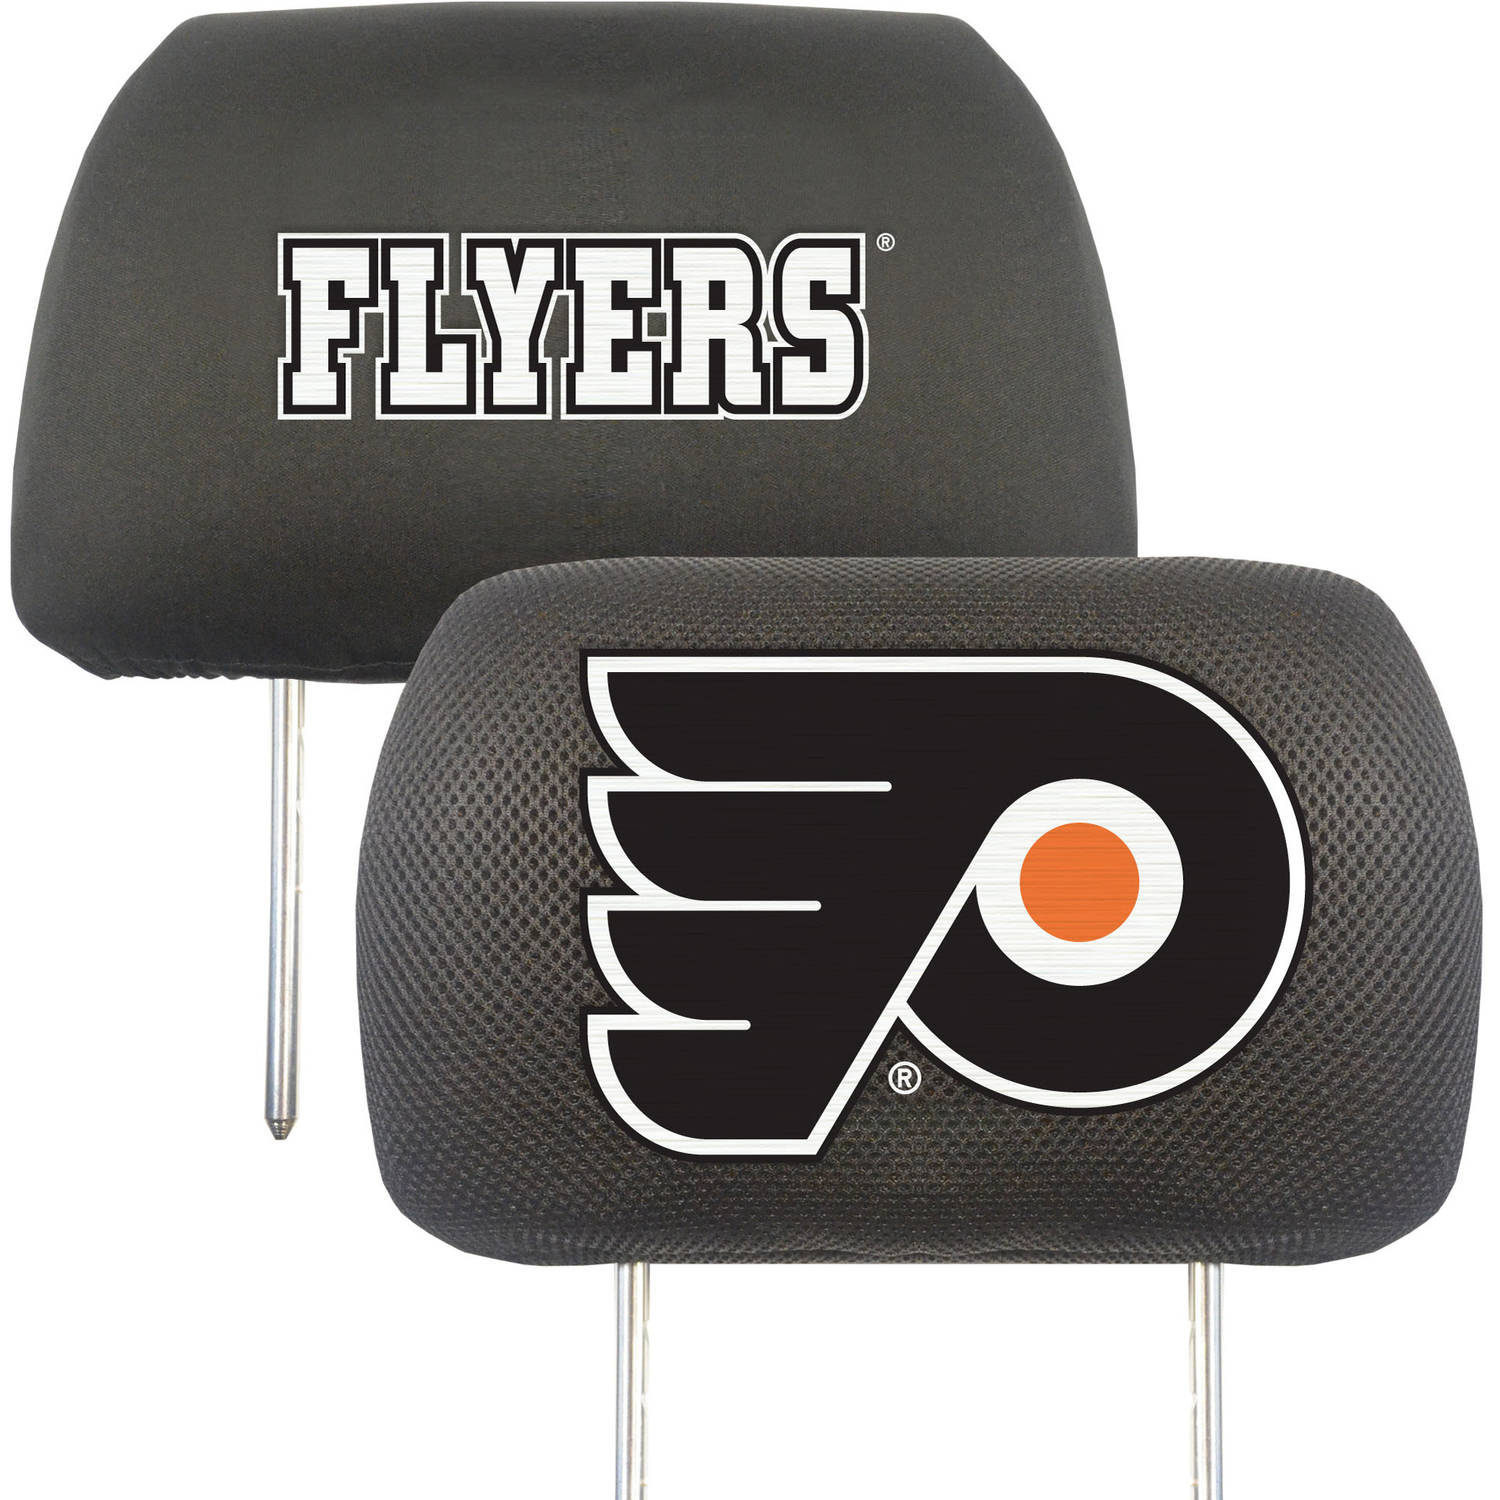 NHL Philadelphia Flyers Headrest Covers